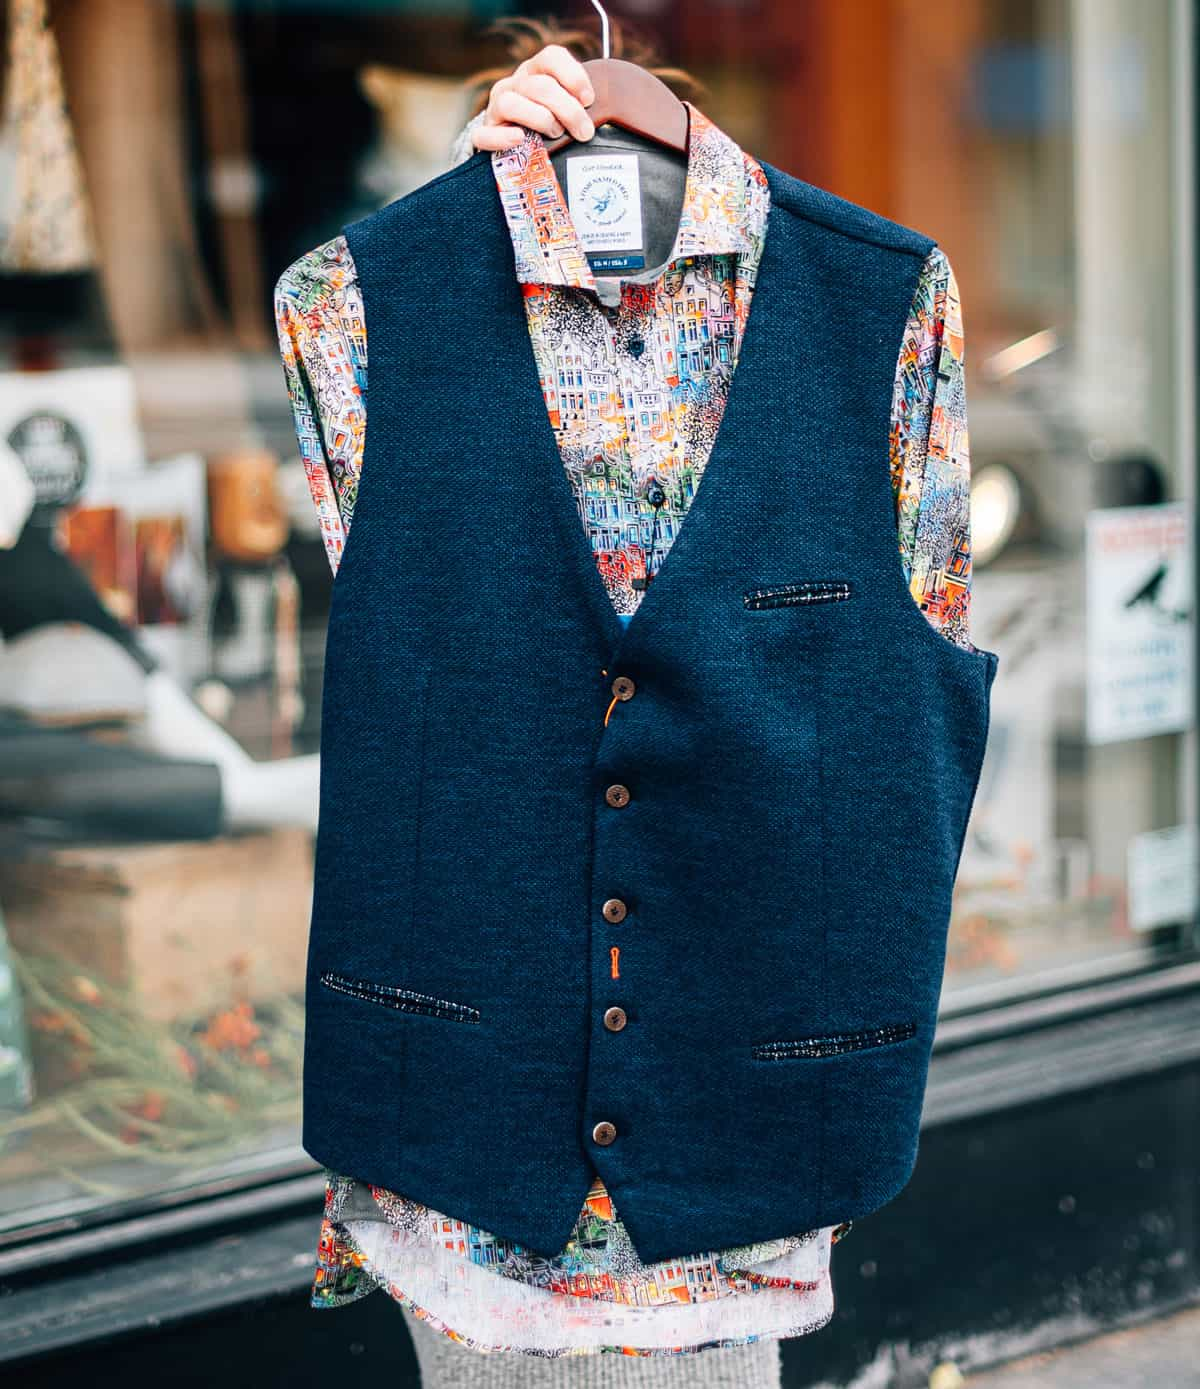 A blue vest over top on a colourful shirt from A Fish Named Fred.